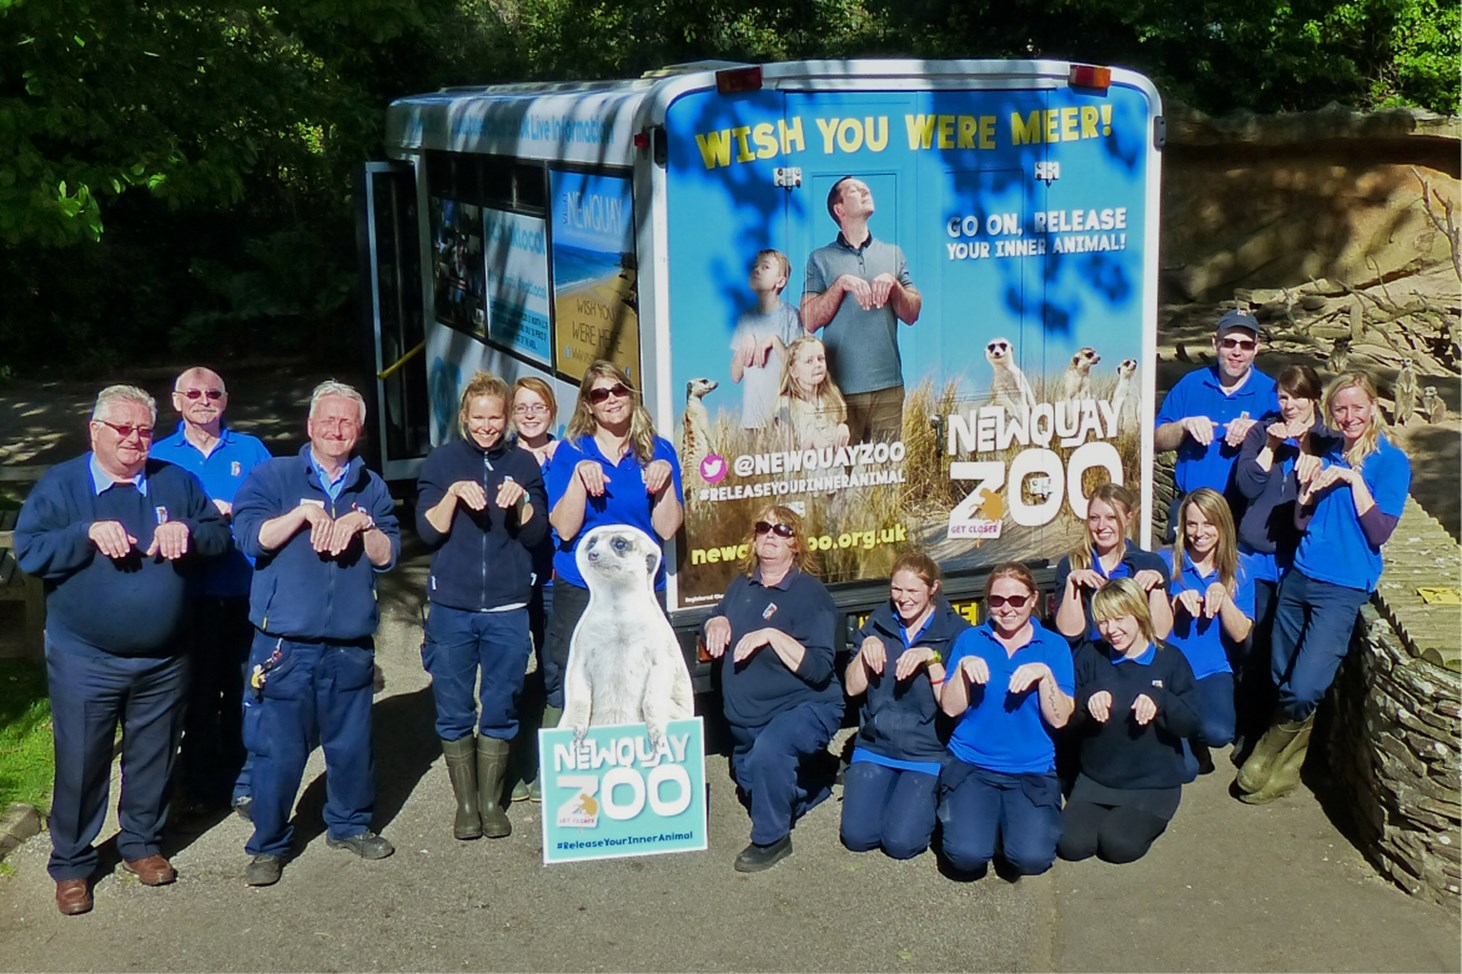 Photo of the Zoo team with the Tweet Bus